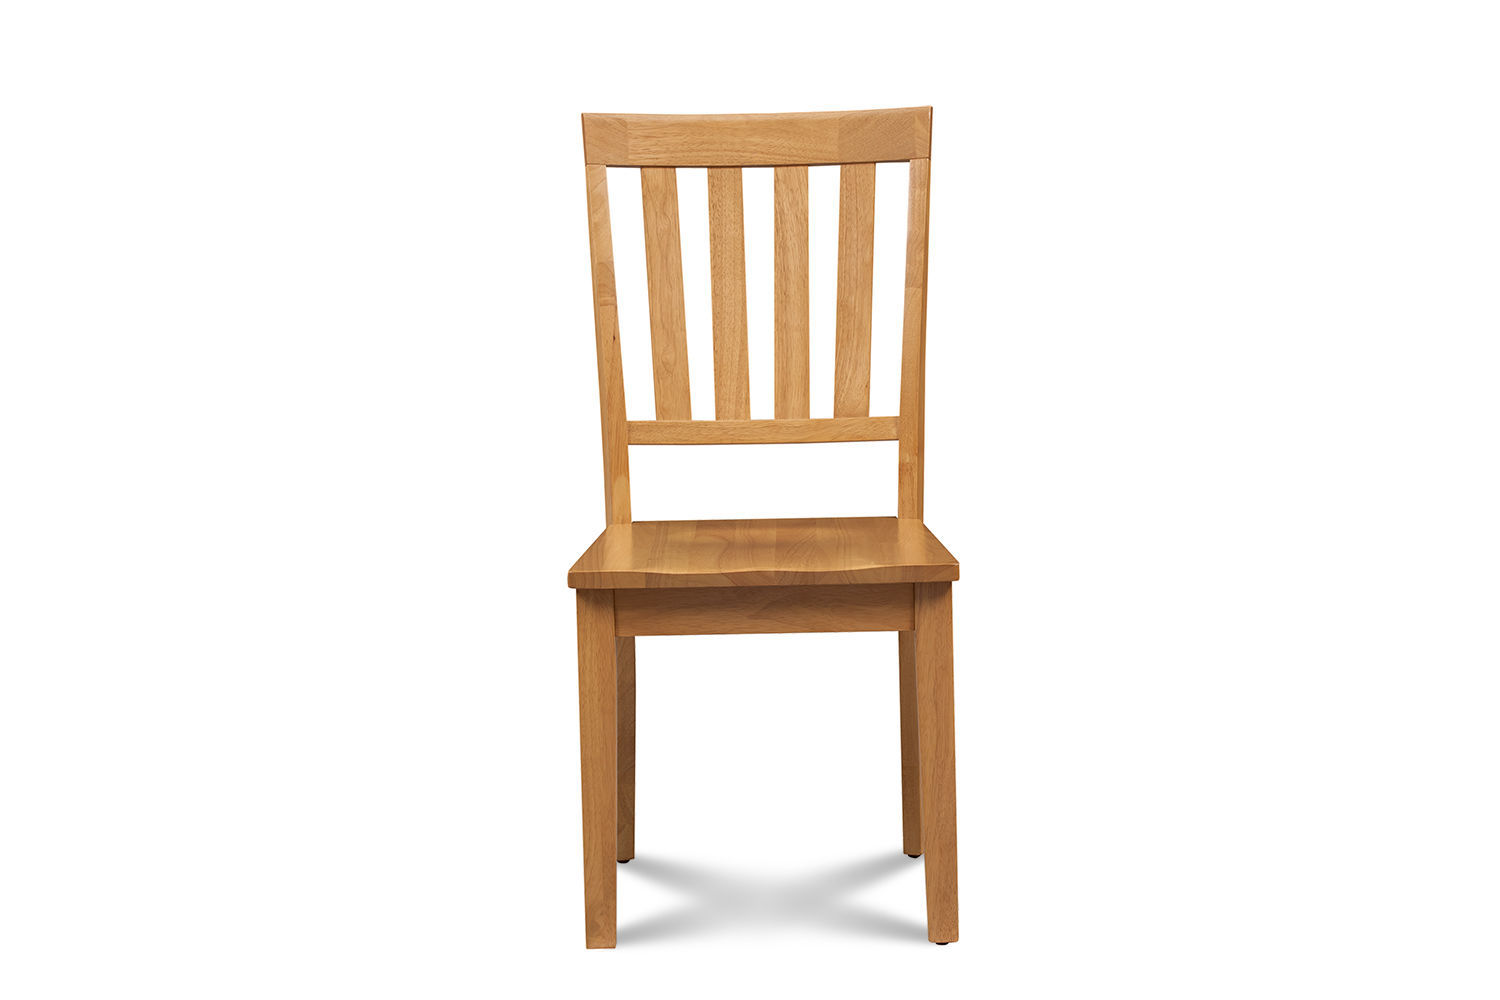 SET OF 6 MOCHA KITCHEN DINING CHAIRS WITH WOODEN SEAT IN OAK FINISH